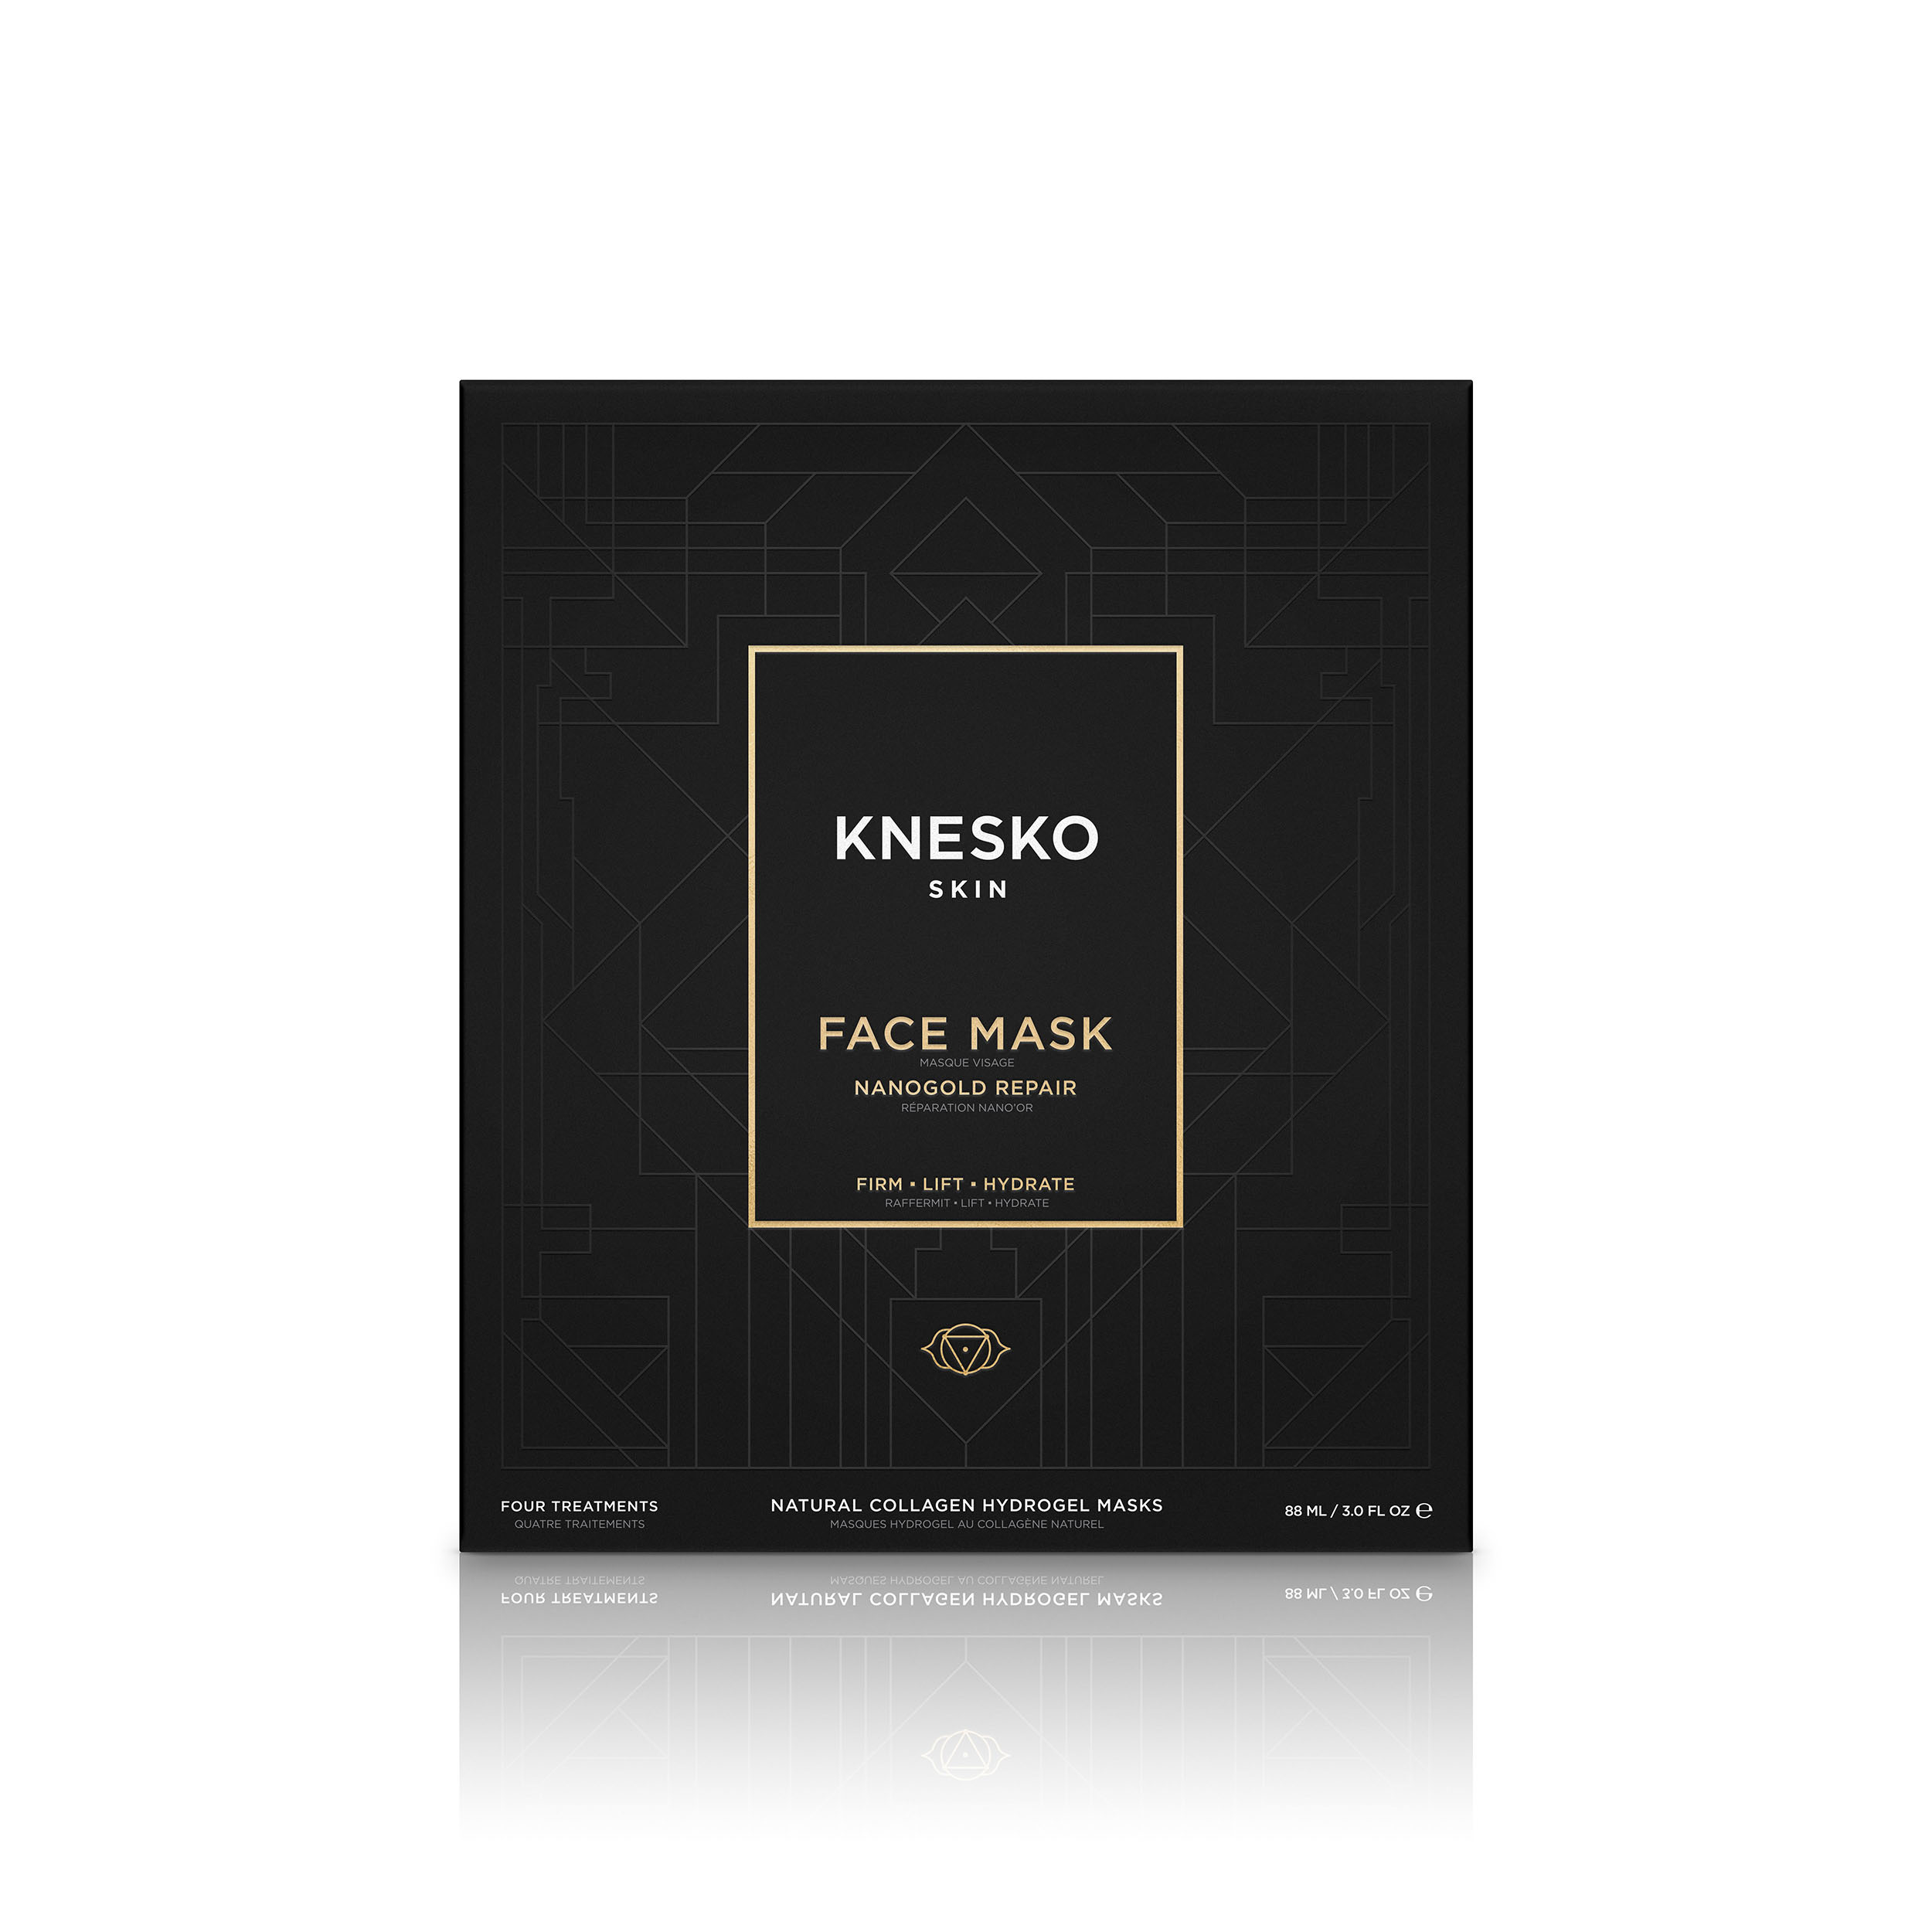 kensko nanogold repair face mask box